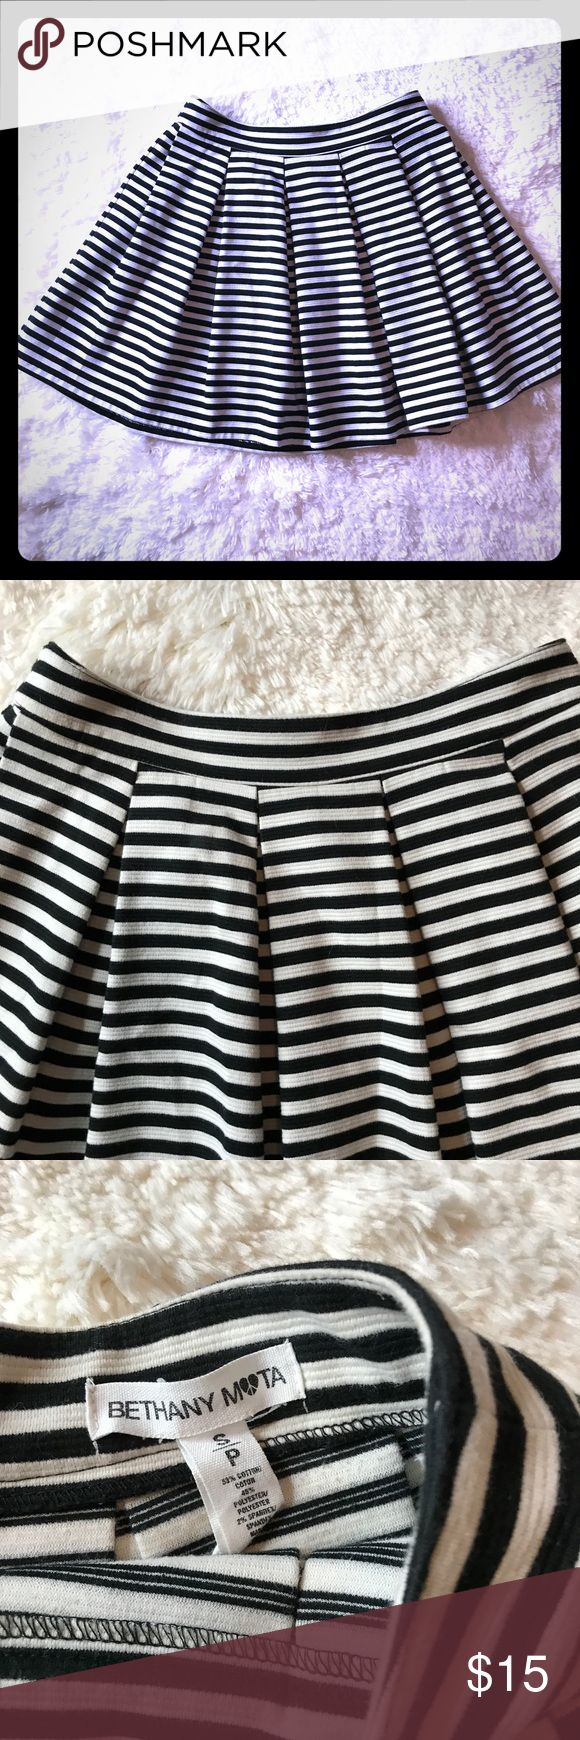 Bethany Mota Aeropostale Skater Skirt Size Small Bethany Mota Aeropostale Juniors Size Small Black White Striped Pleated Flared Skater Mini Skirt. Zips in back, excellent like new condition.  Measurements laying flat across is 12 inches at waistline  Length is 15 inches  53%n Cotton 45% Polyester 2% Spandex   Check out my other items, adding daily. Bethany Mota Skirts Circle & Skater